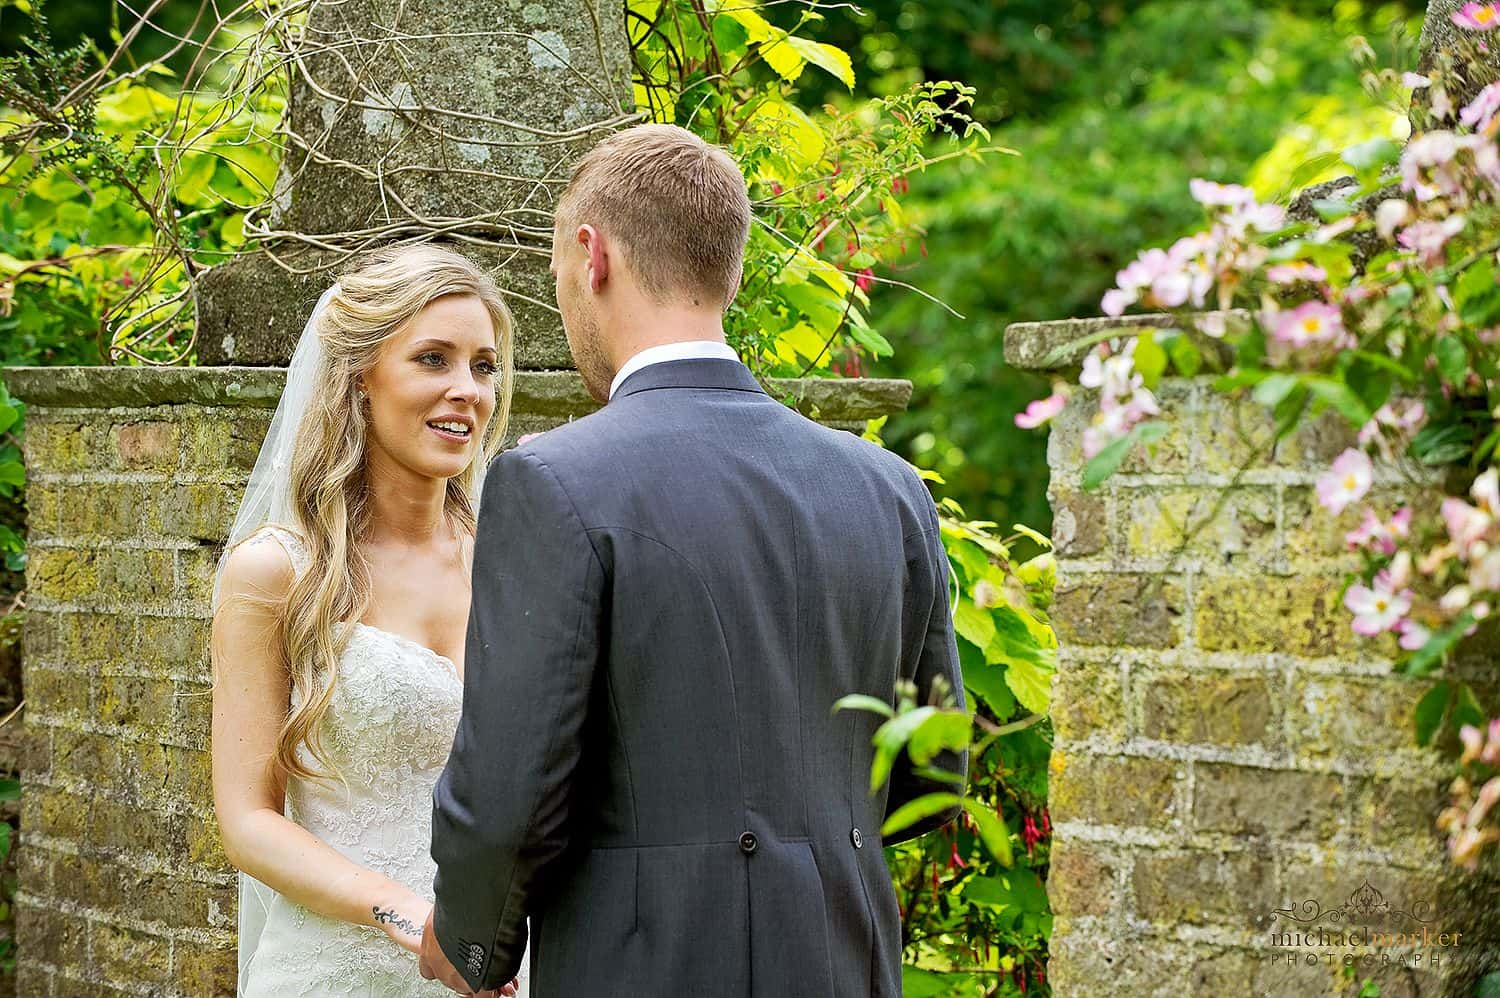 wedding-day-moment-in-th-egardens